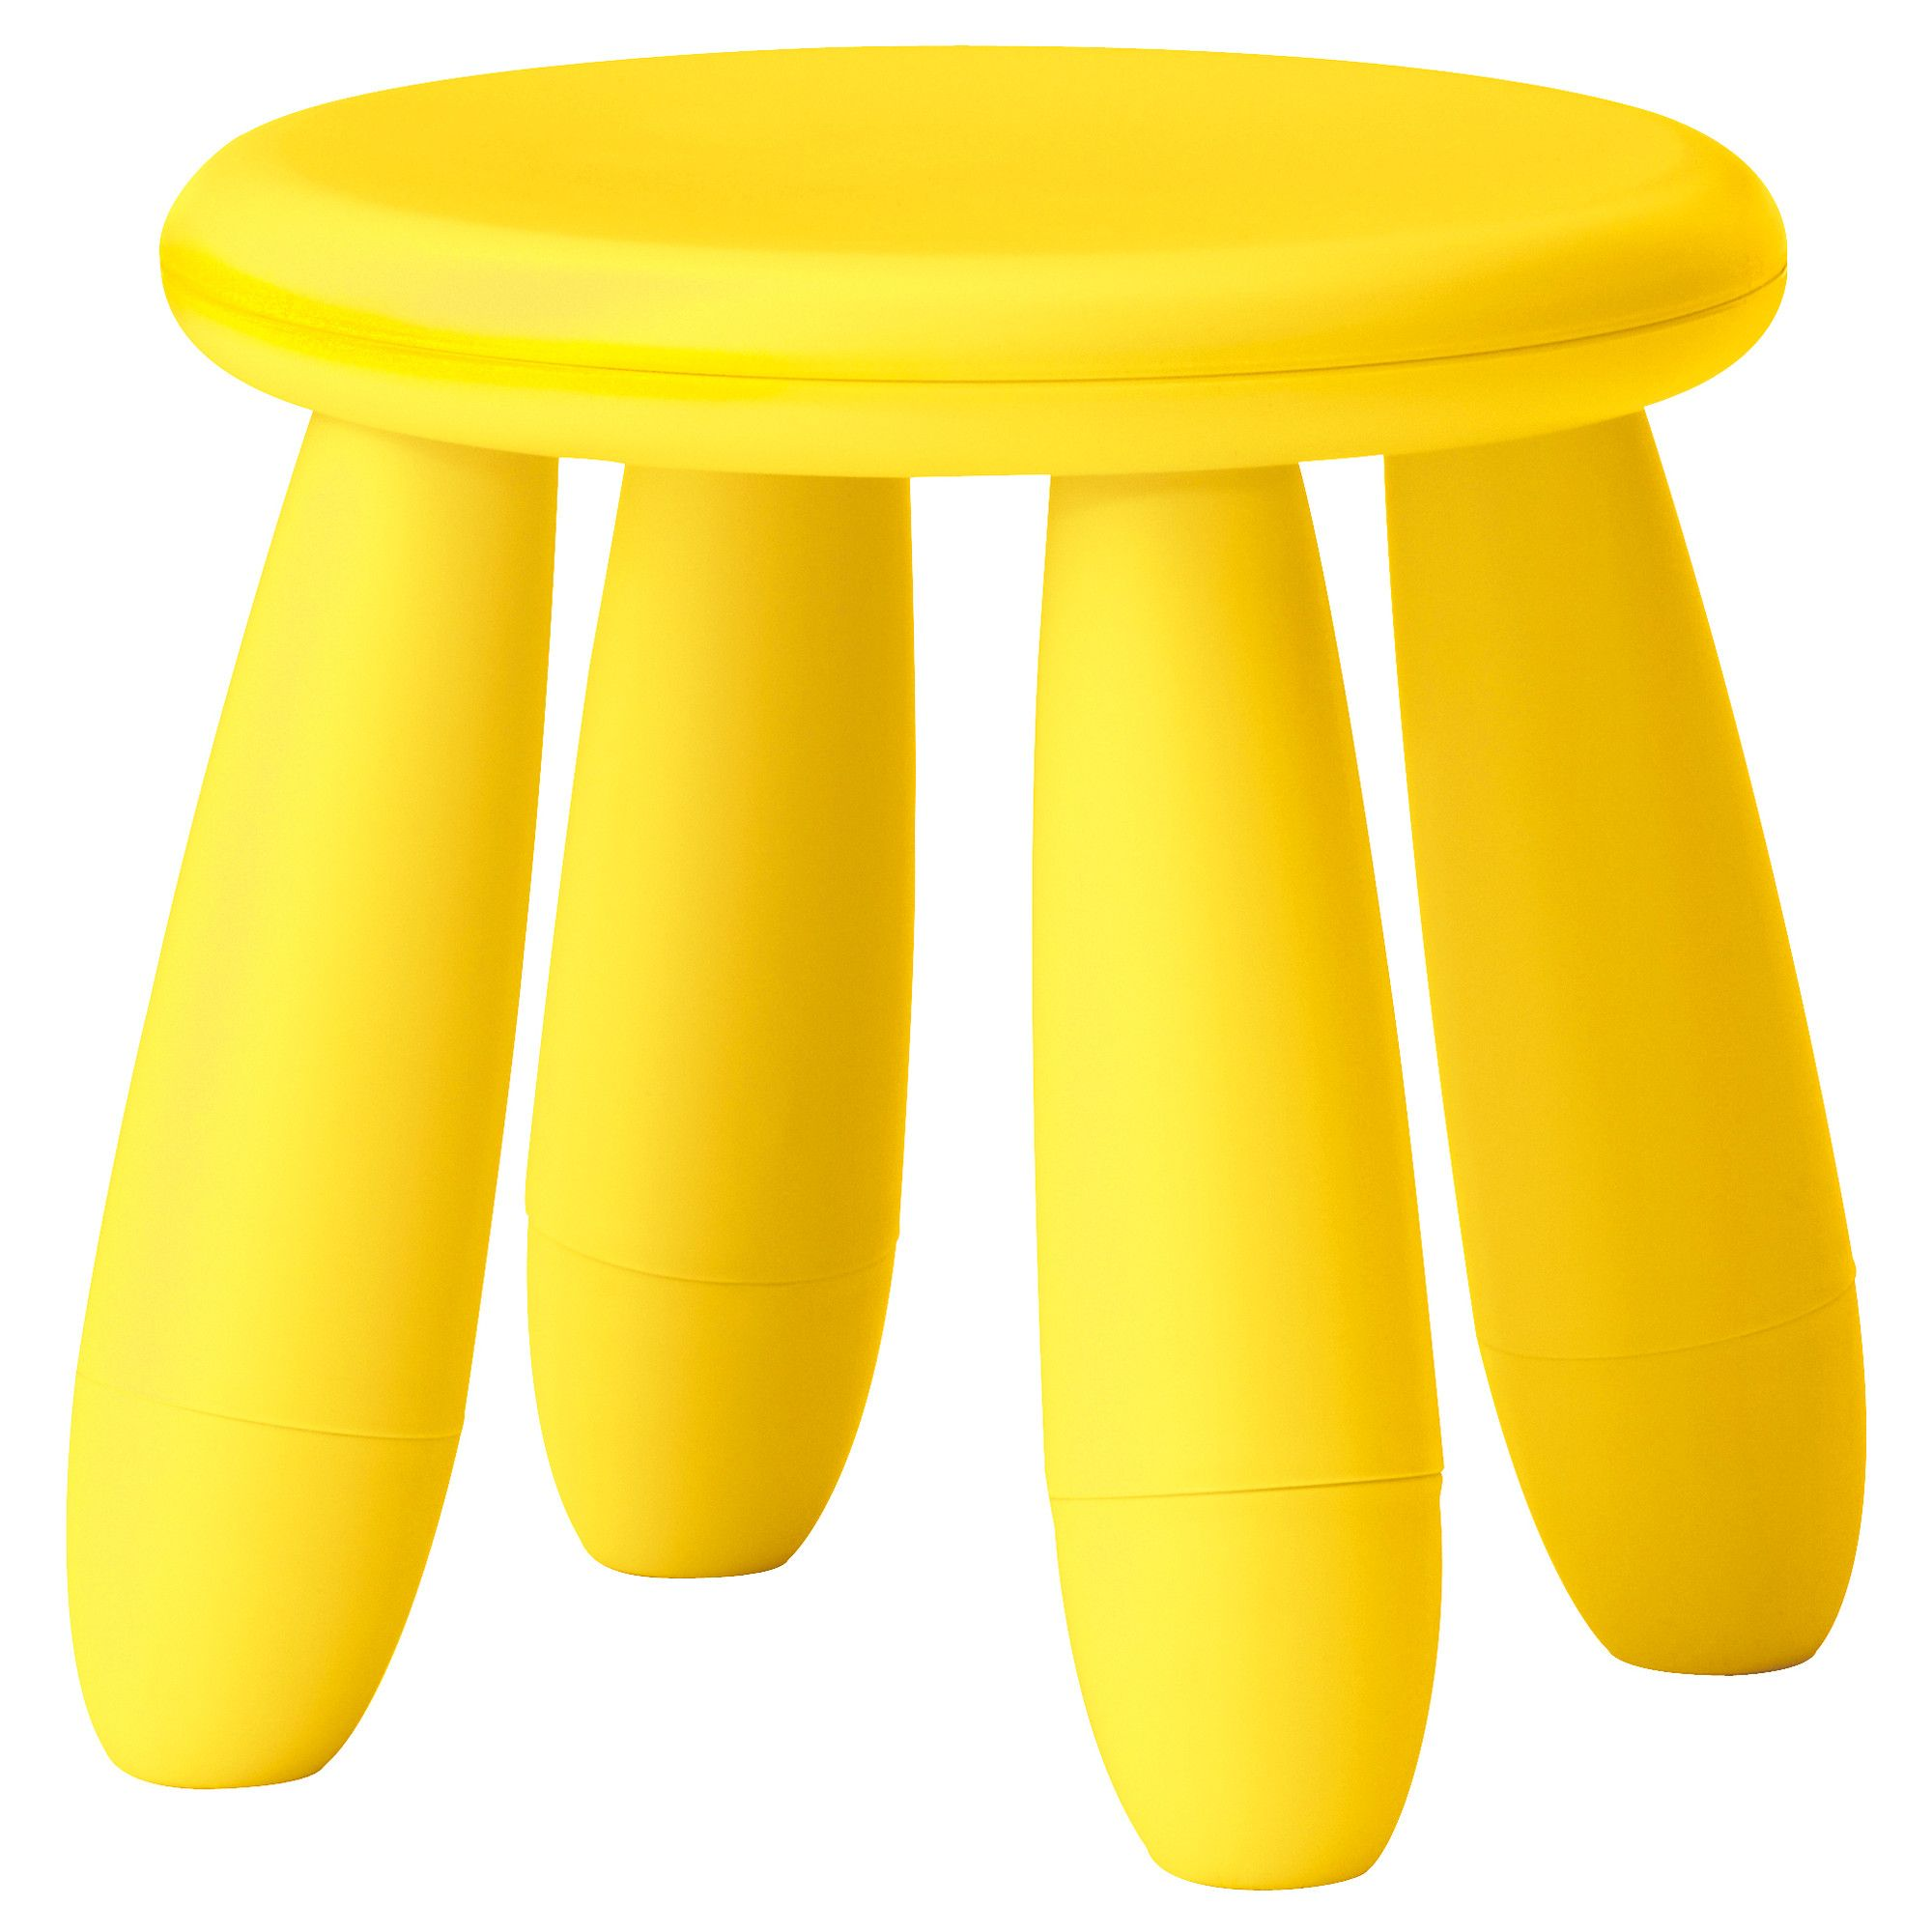 Ikea Us Furniture And Home Furnishings Childrens Lighting Kids Stool Ikea Childrens Chair